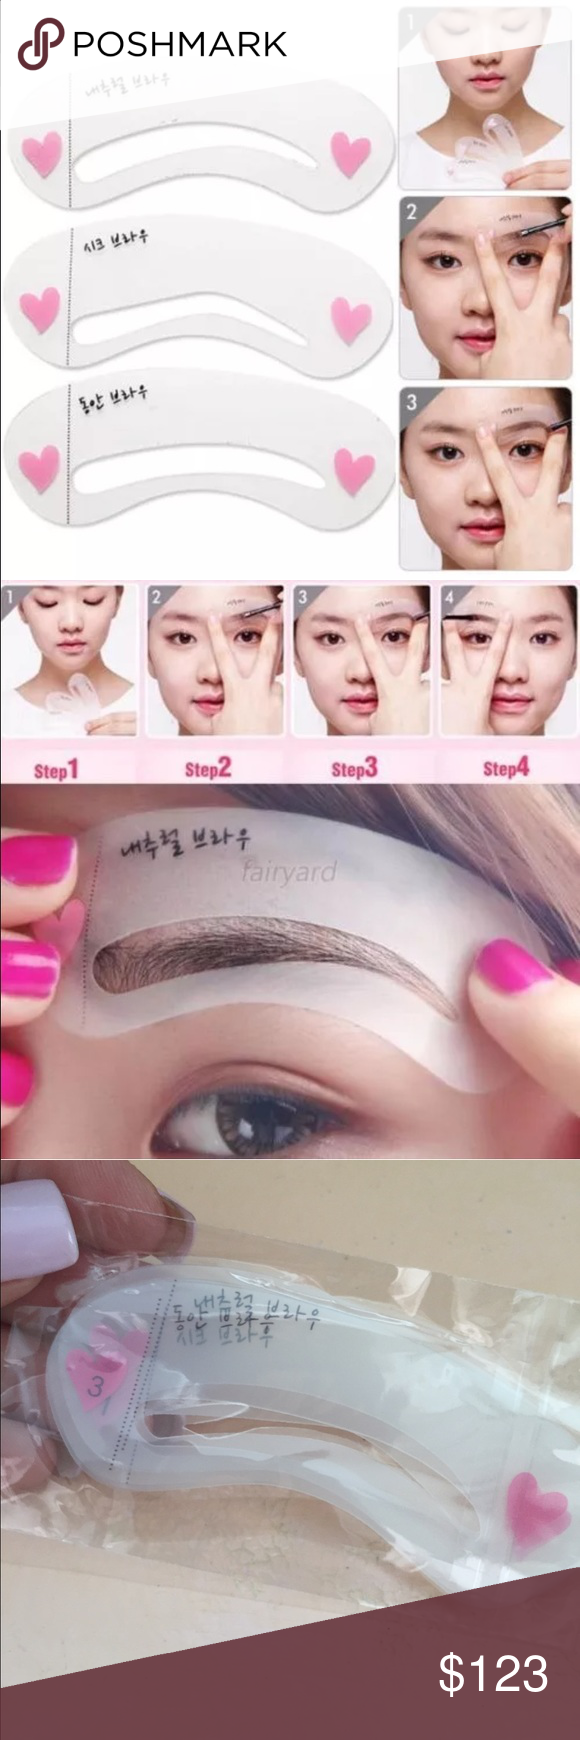 3 Eyebrow Stencils Choose 10 Items For 25 Boutique My Posh Shares